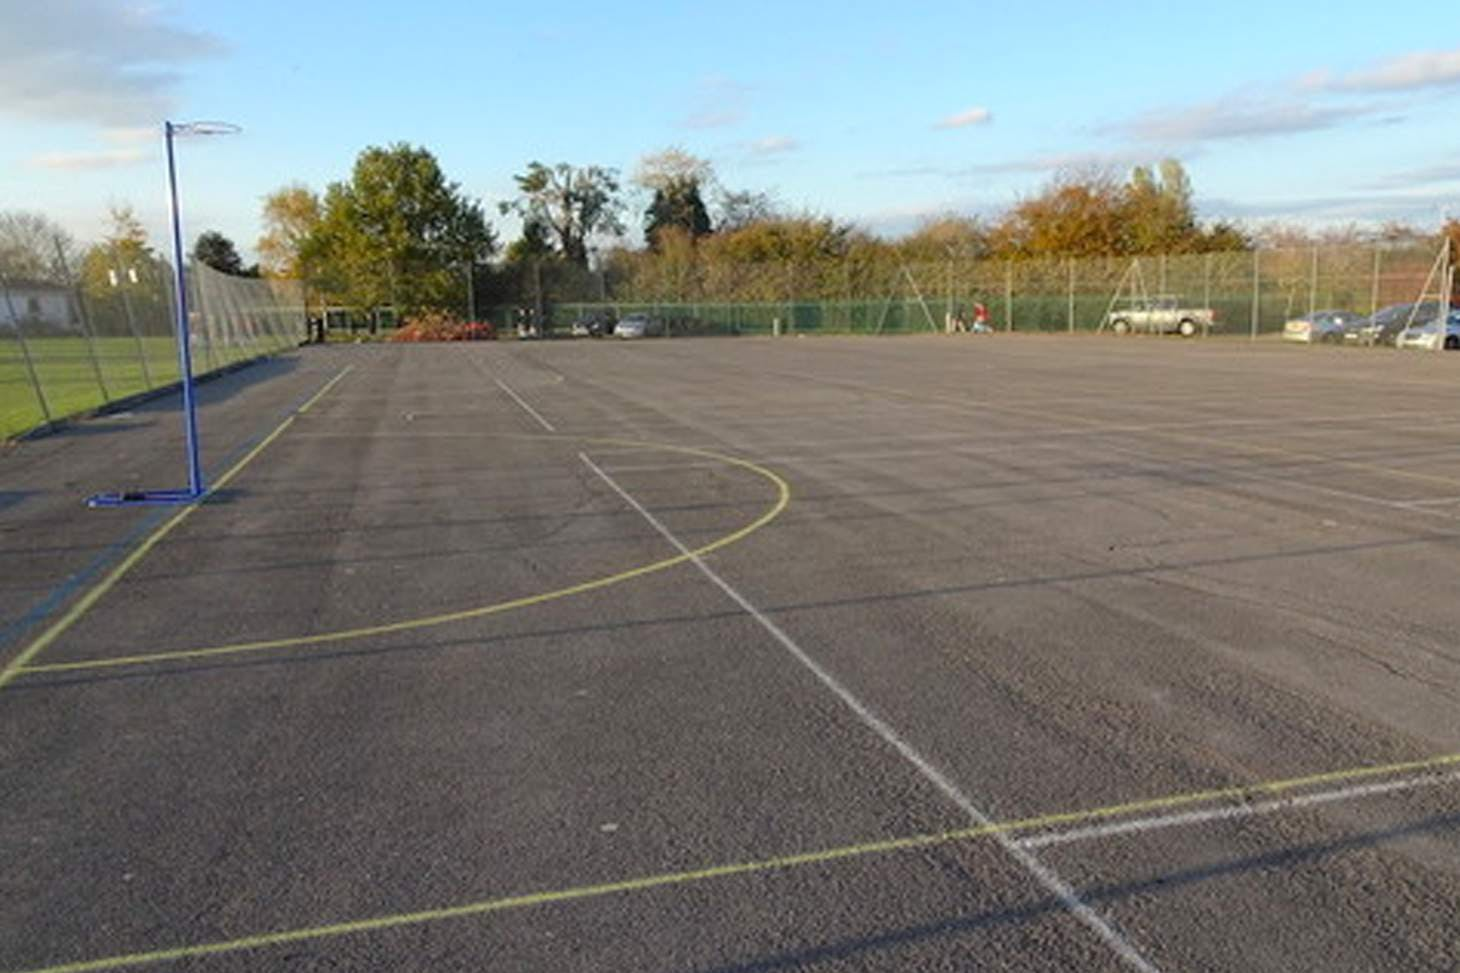 Holmer Green Senior School Court | Hard (macadam) tennis court